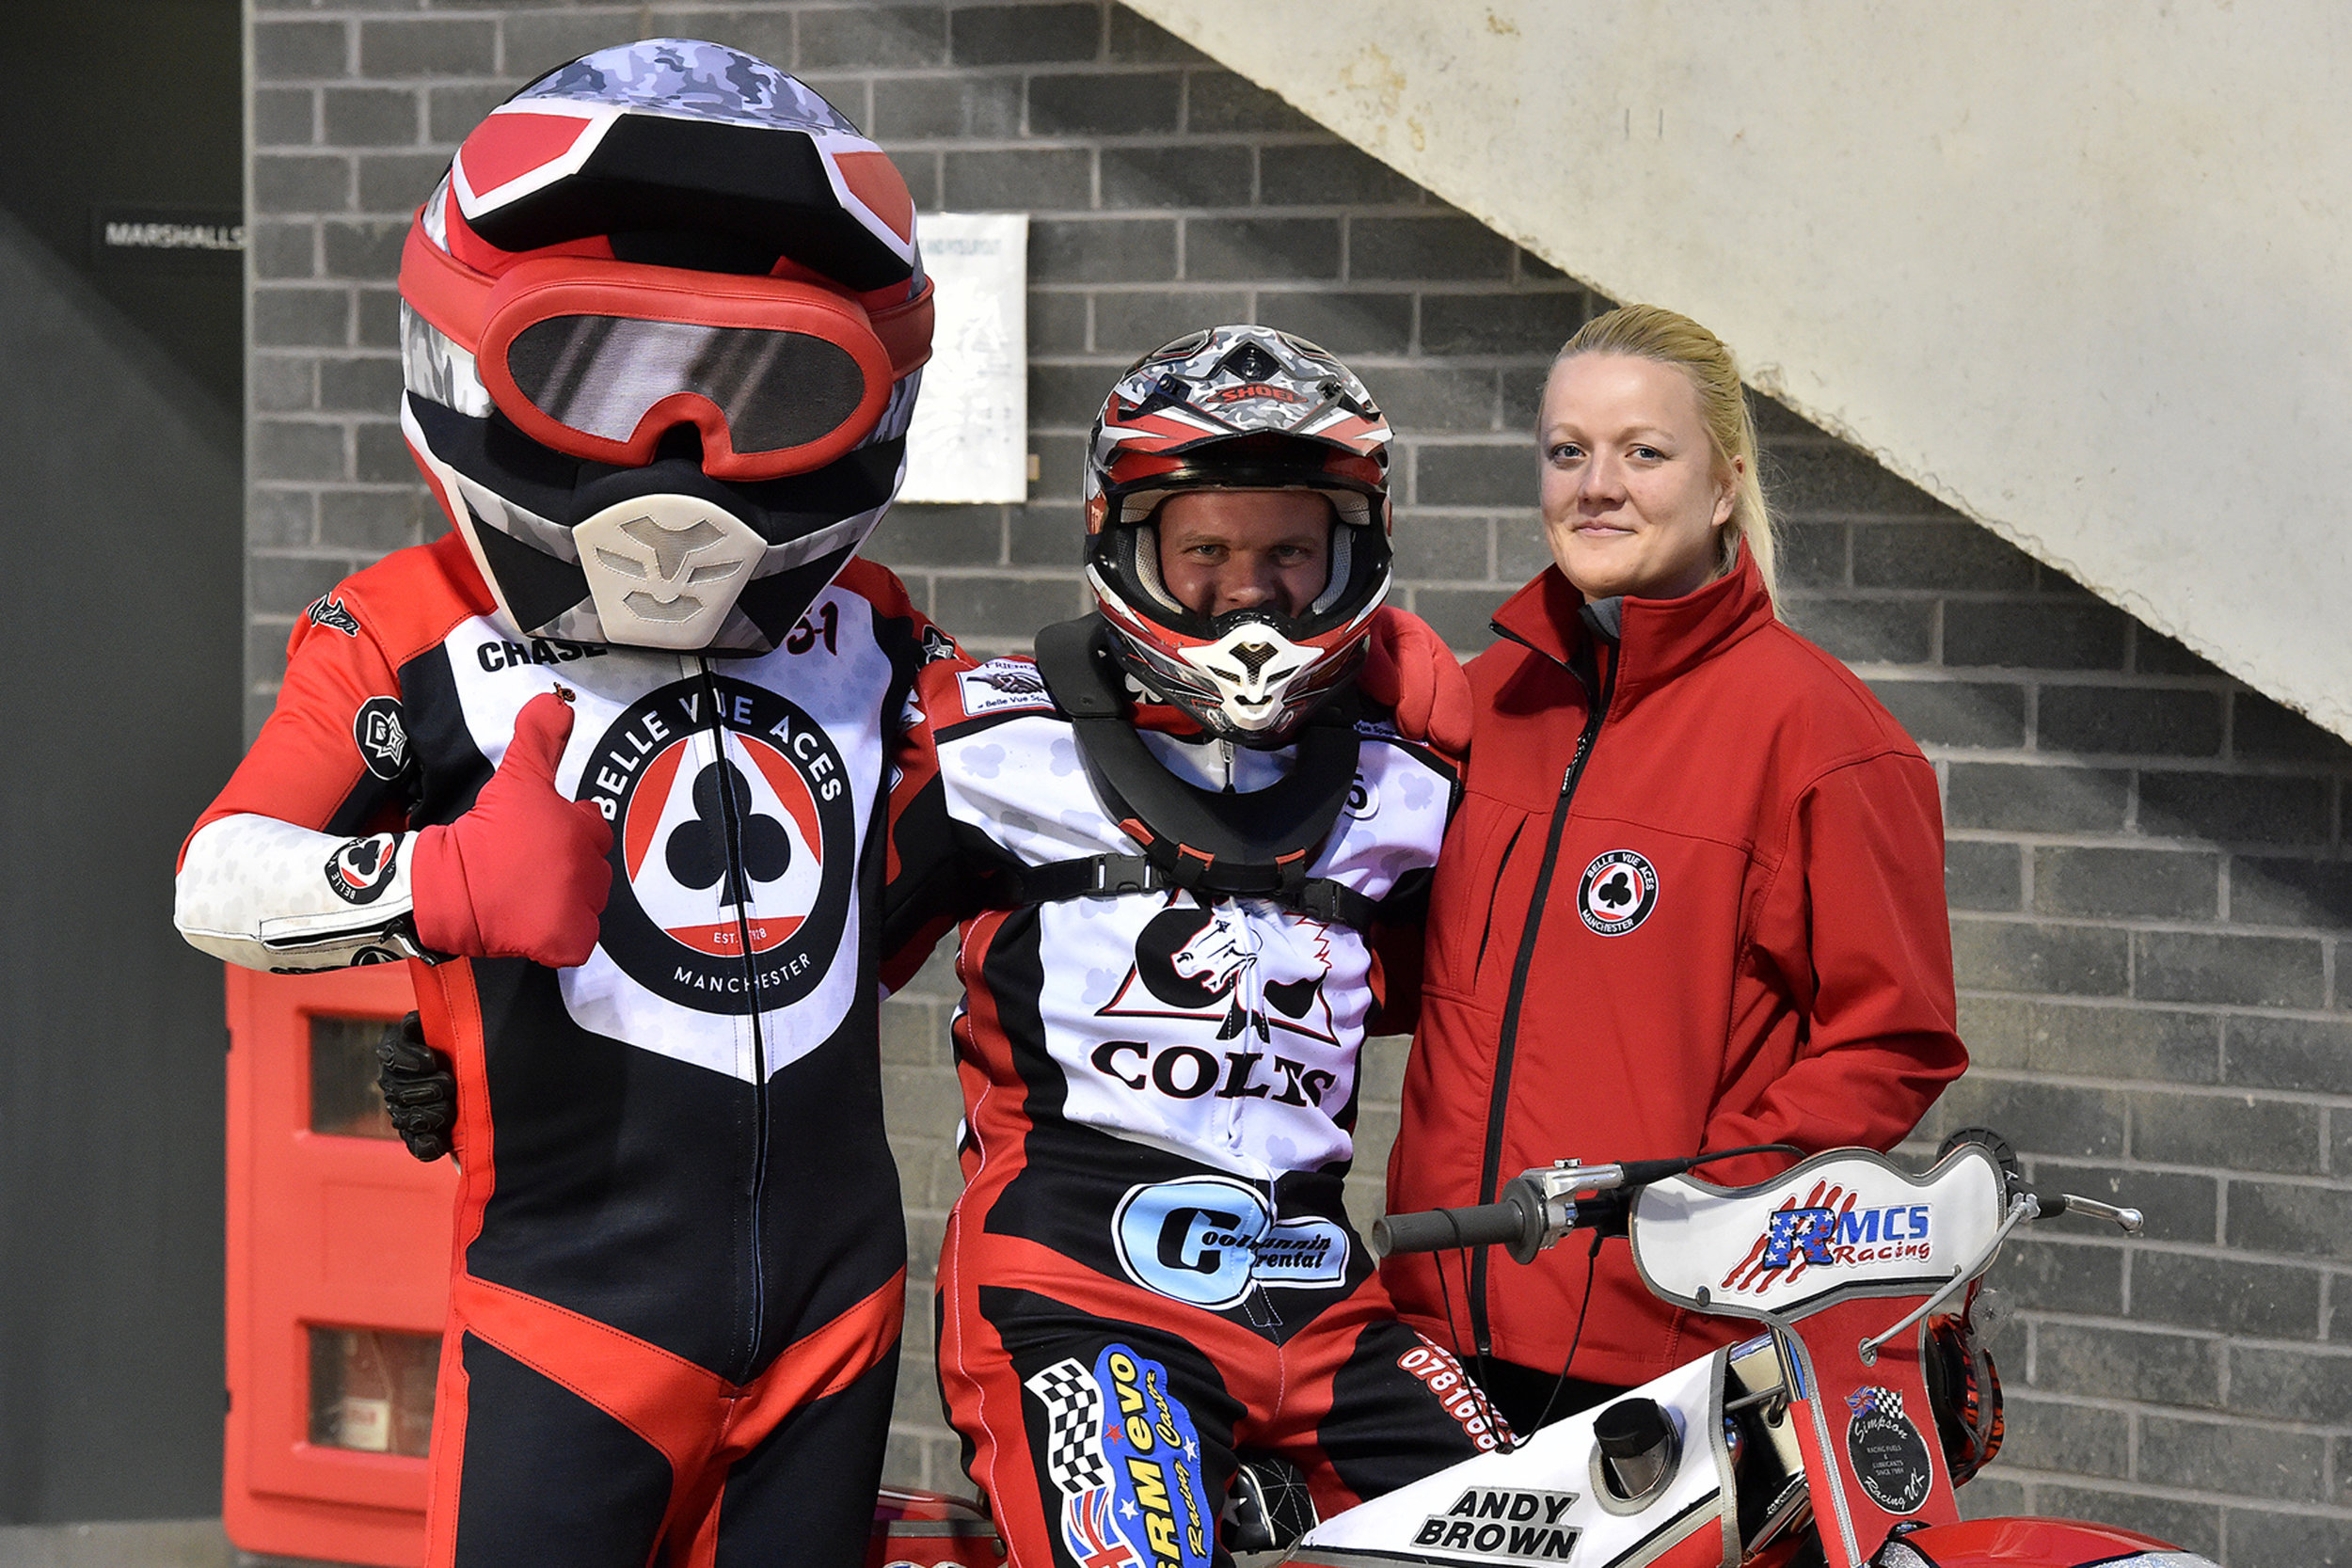 Andy Mellish (centre) with wife Danielle (right) and Belle Vue mascot Chase The Ace